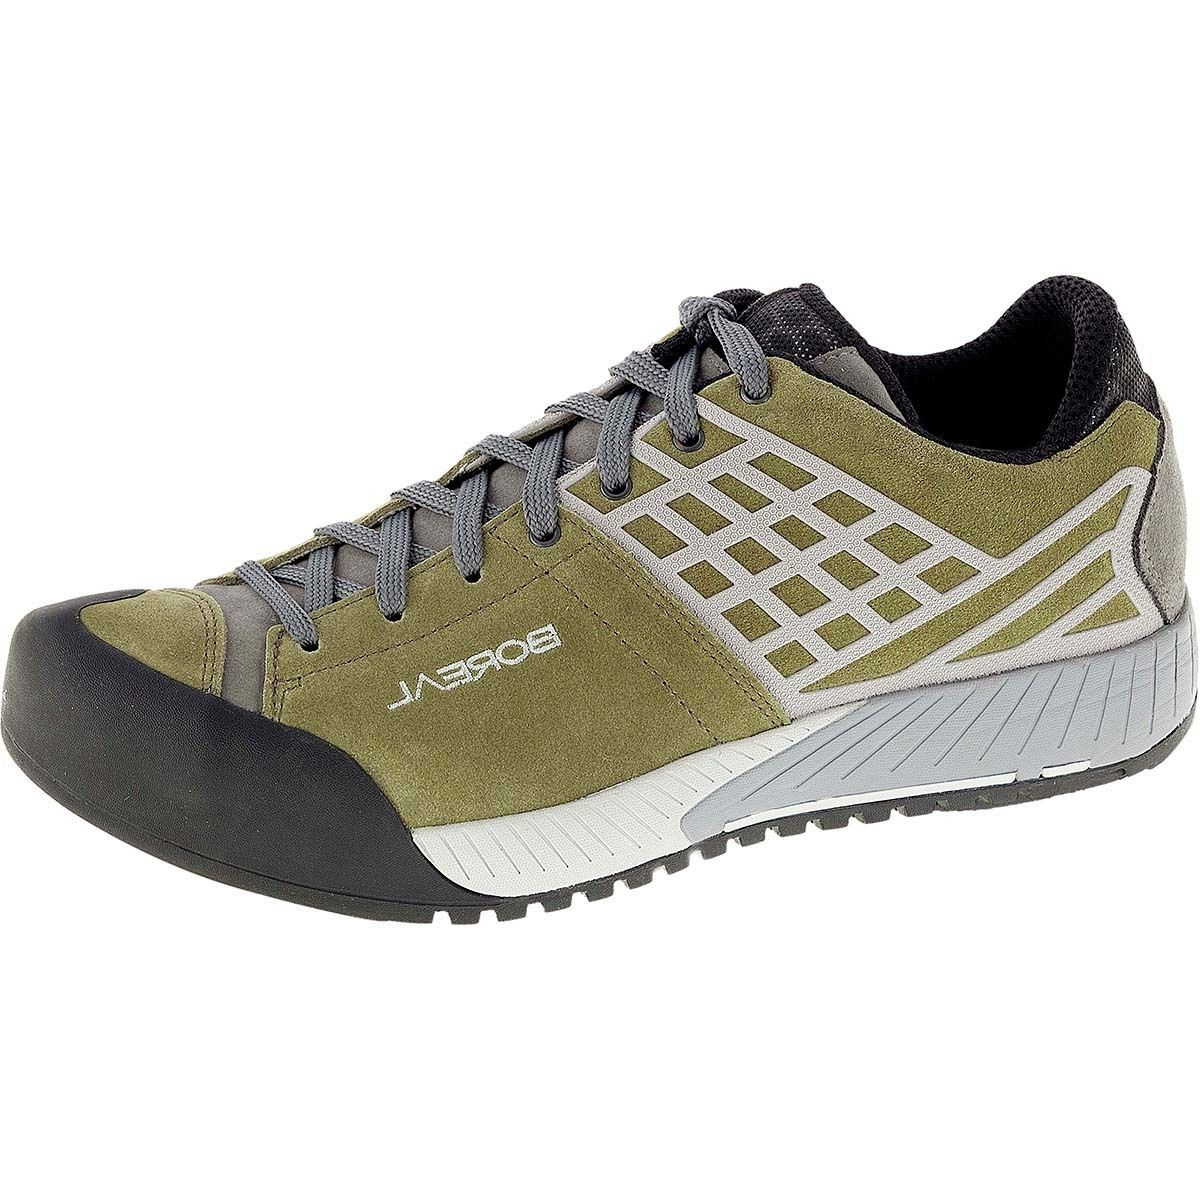 Boreal Bamba Shoe - Men's